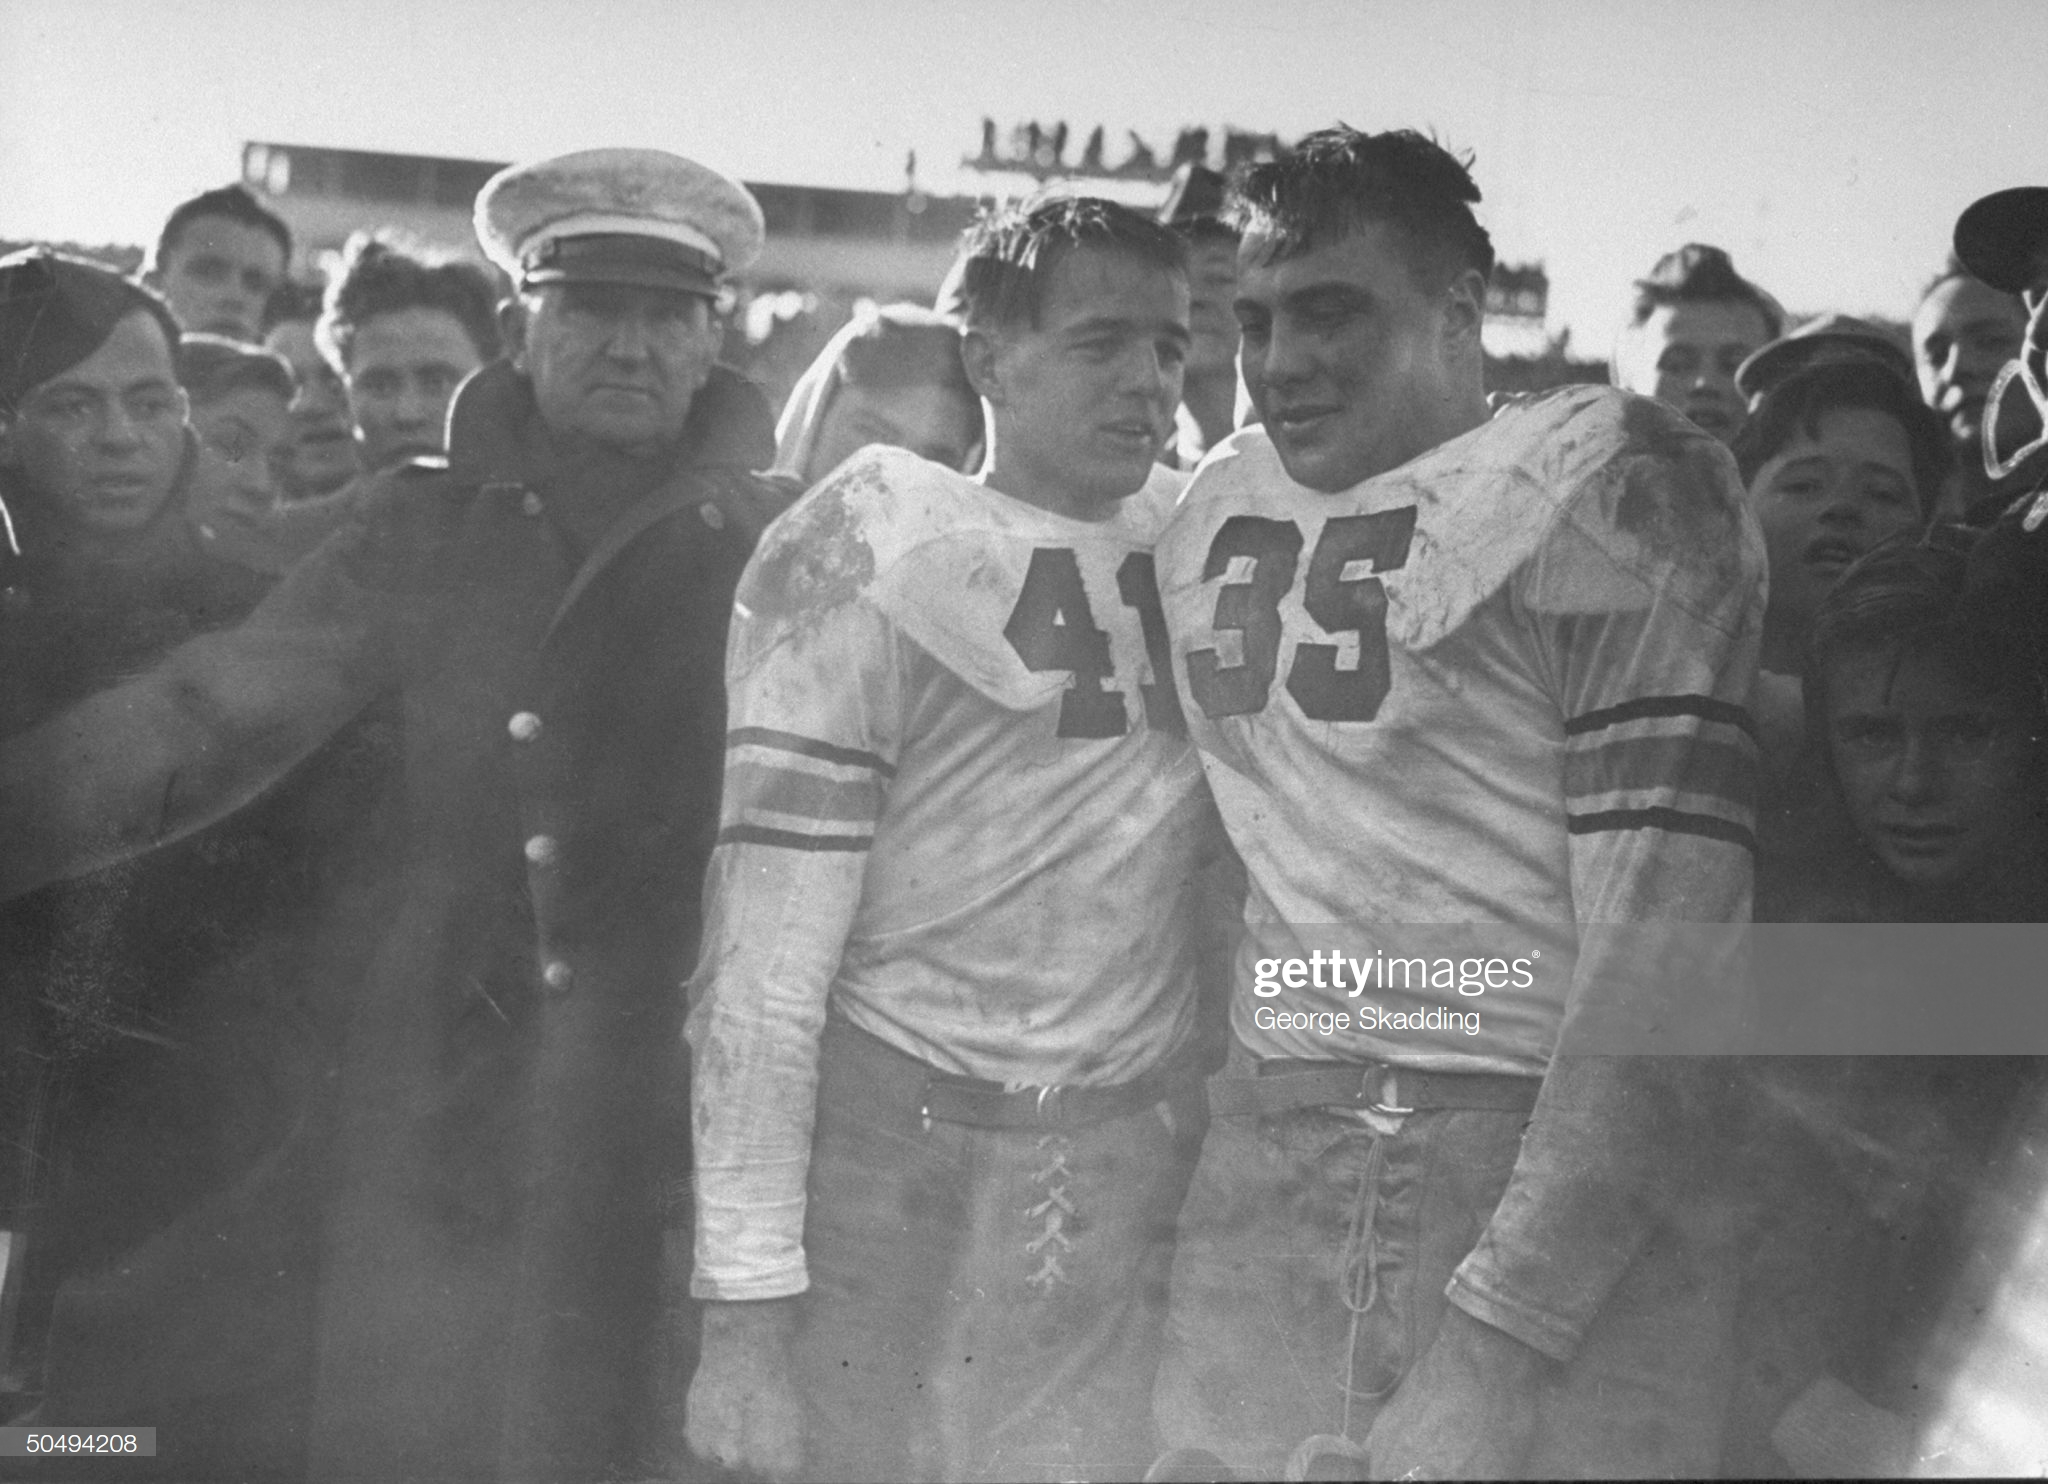 70-Year Anniversary: No. 1 Army Tops No. 2 Navy to Seal National Championship